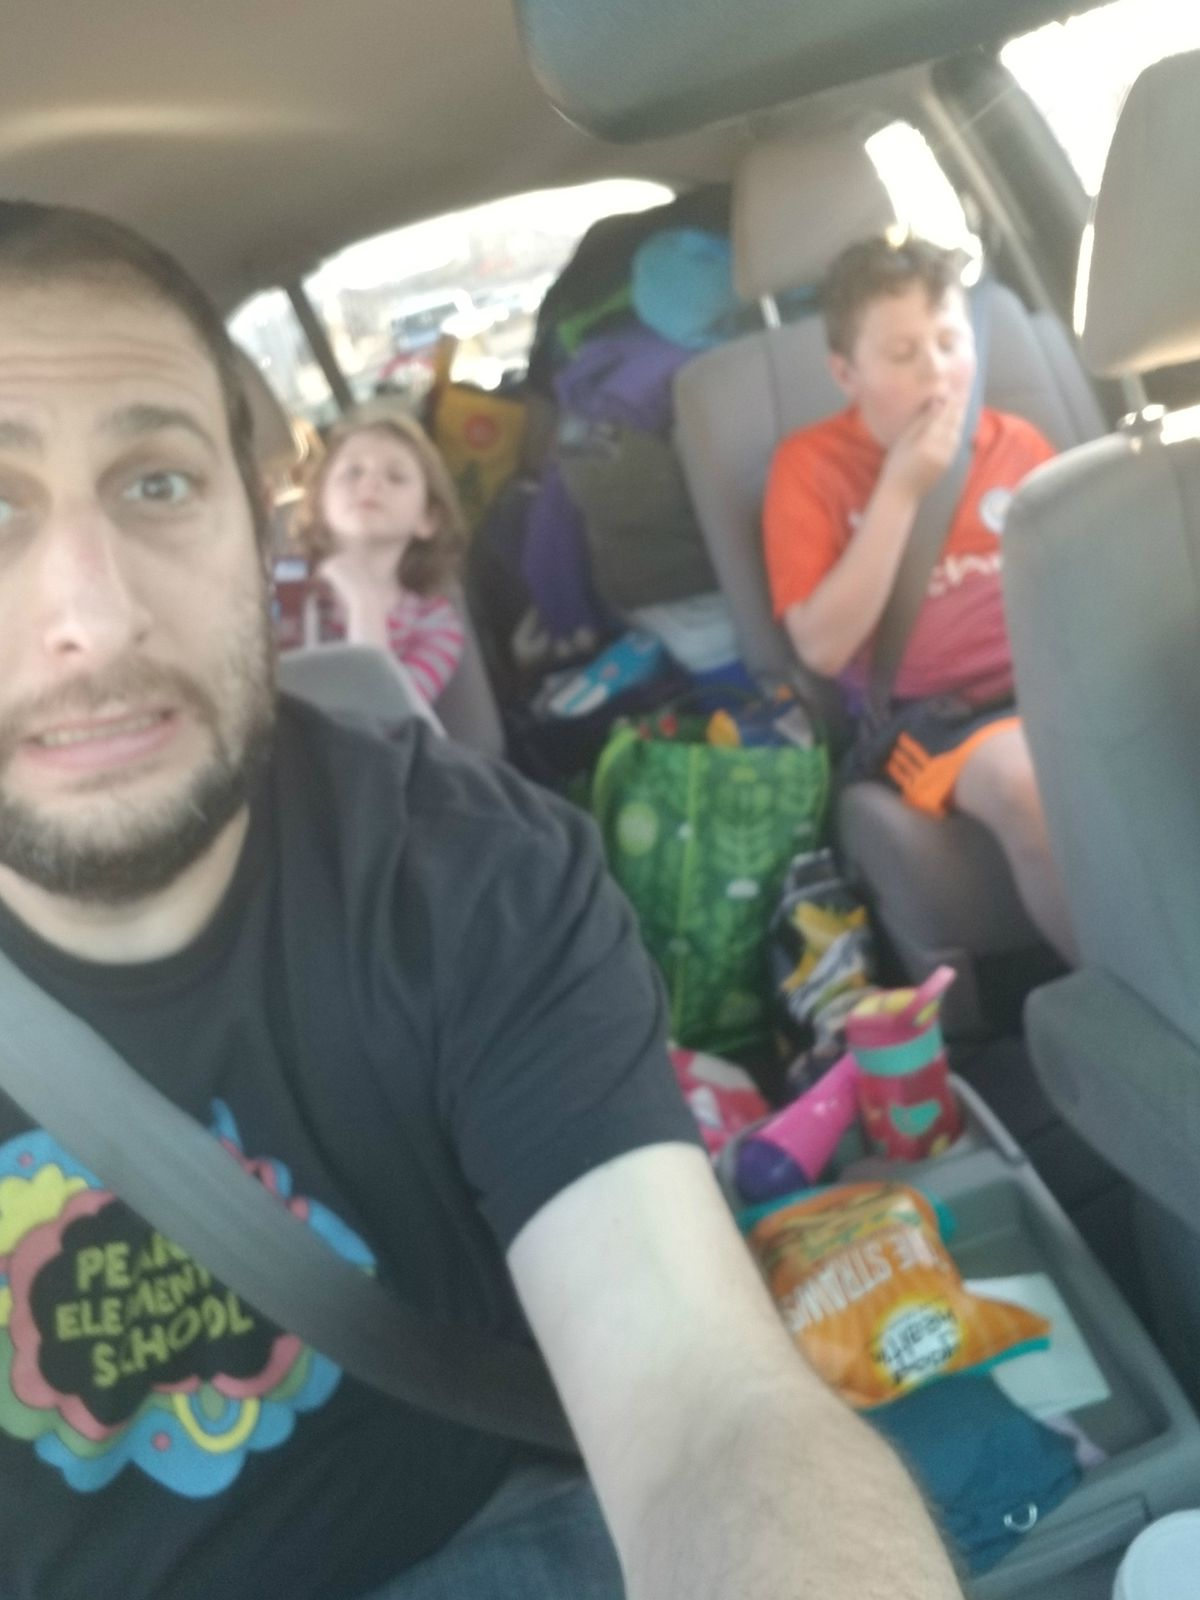 A family road trip